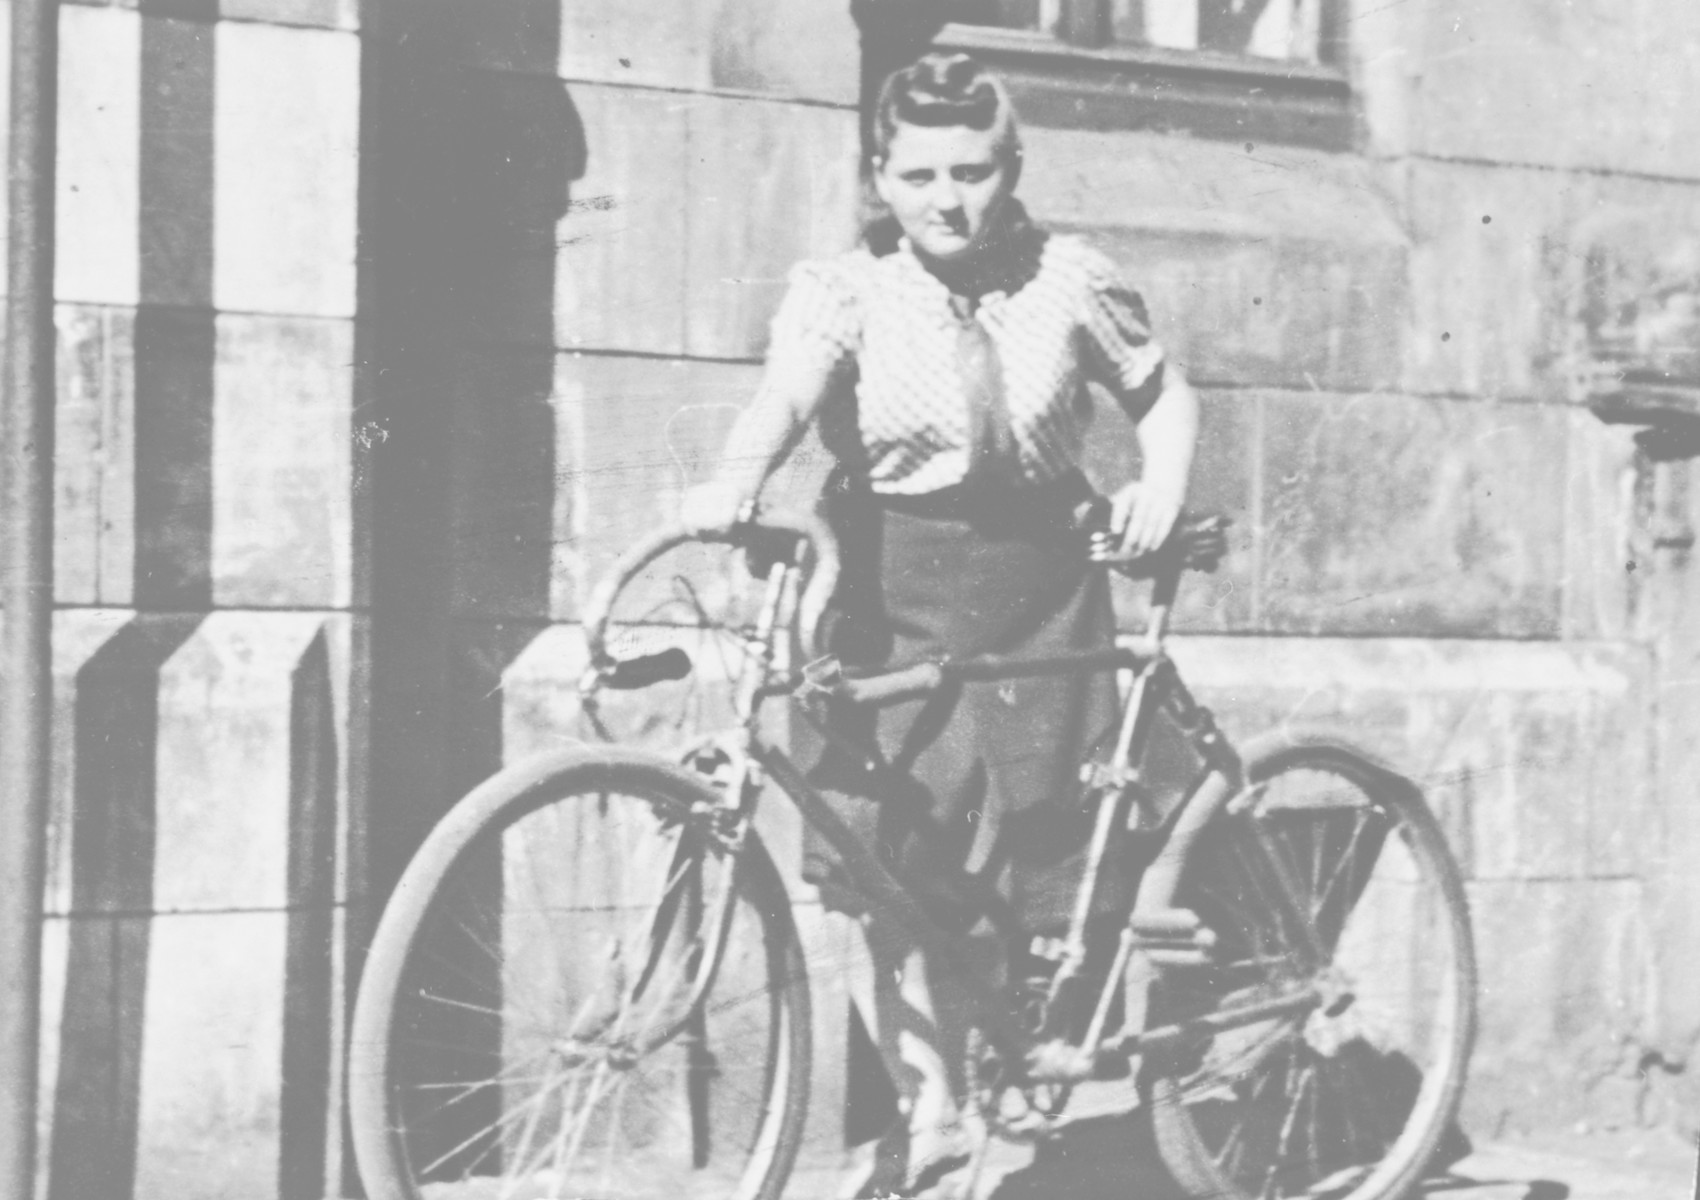 Frymka Russinek stands with her bicycle on the street after the war.